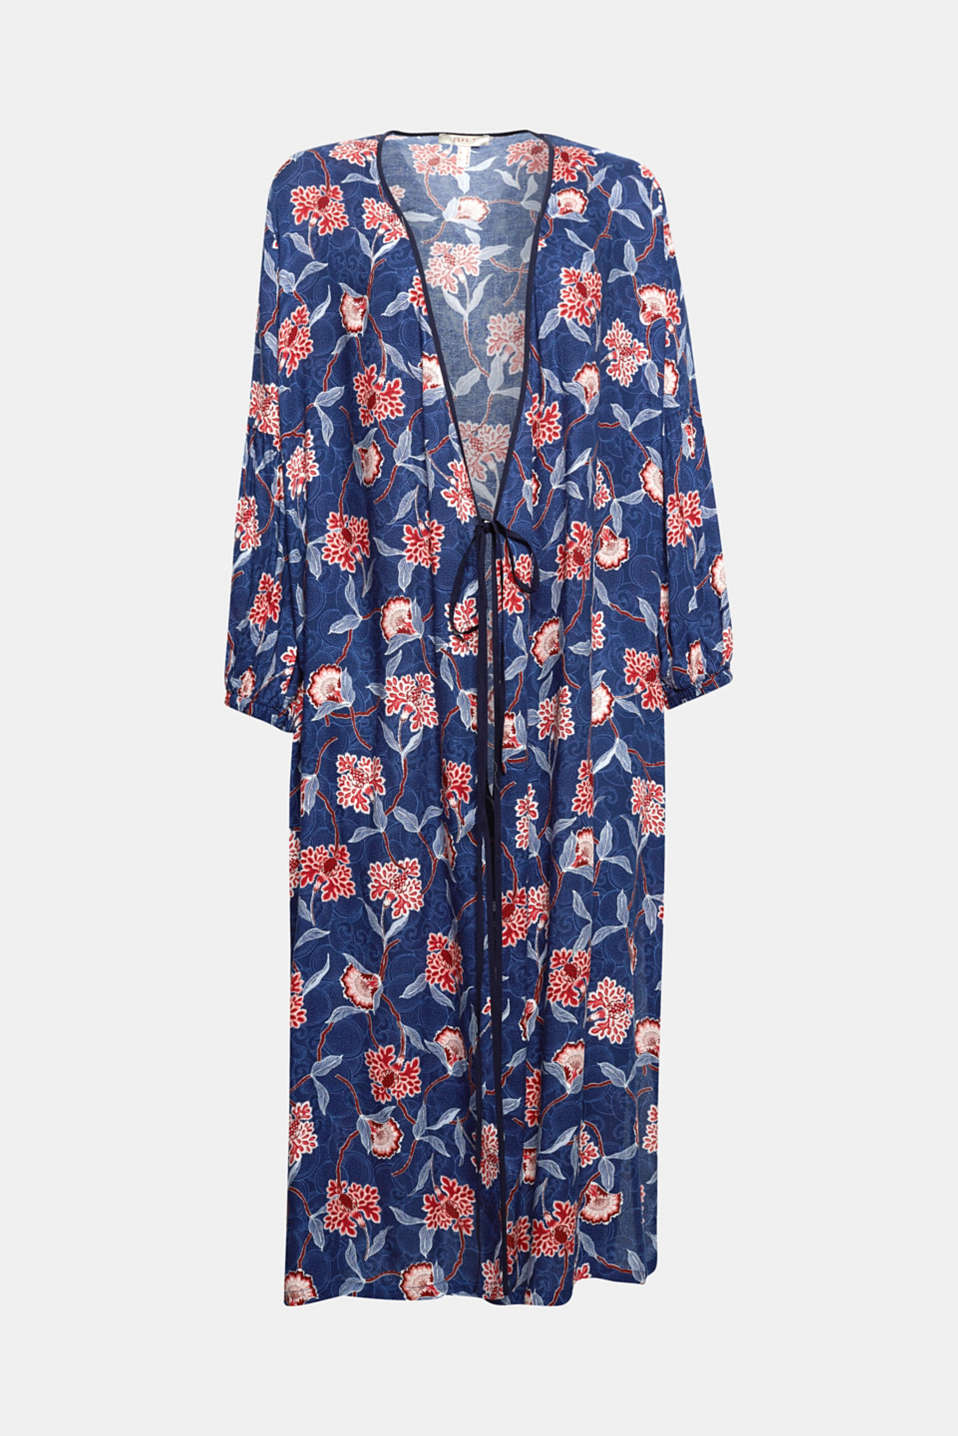 The feminine wrap-over effect, the lightweight fabric and the bright flower pattern give this kimono dress its spring-like charm!